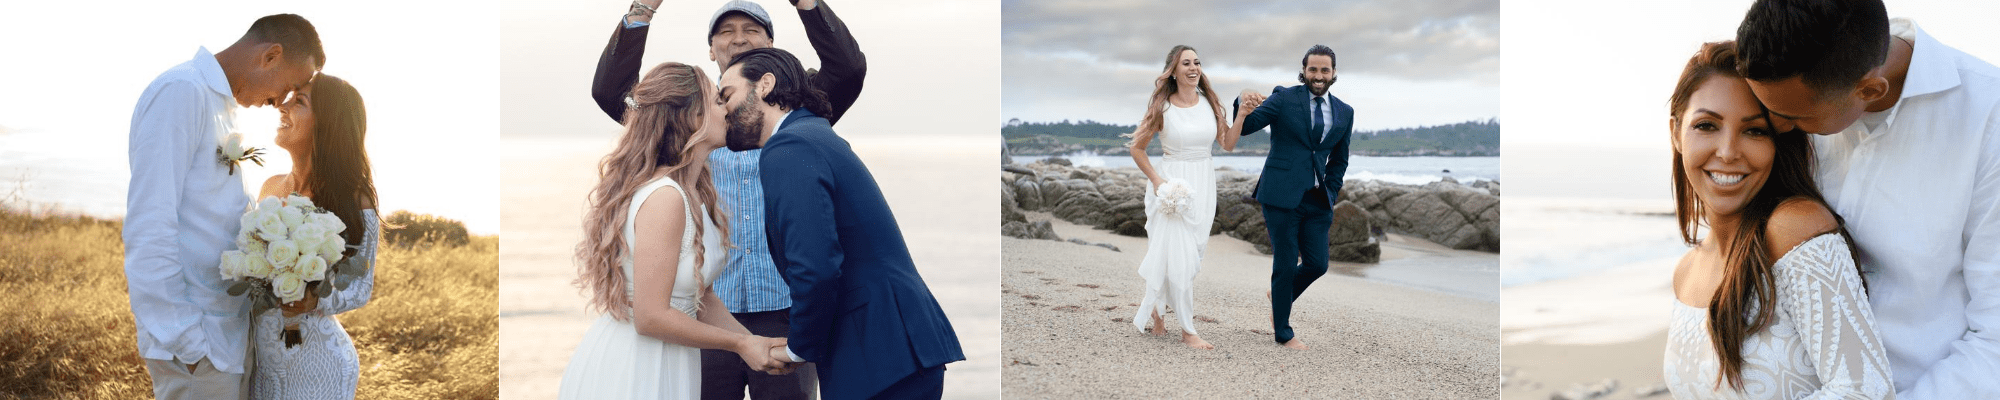 Carmel CA elopement photography